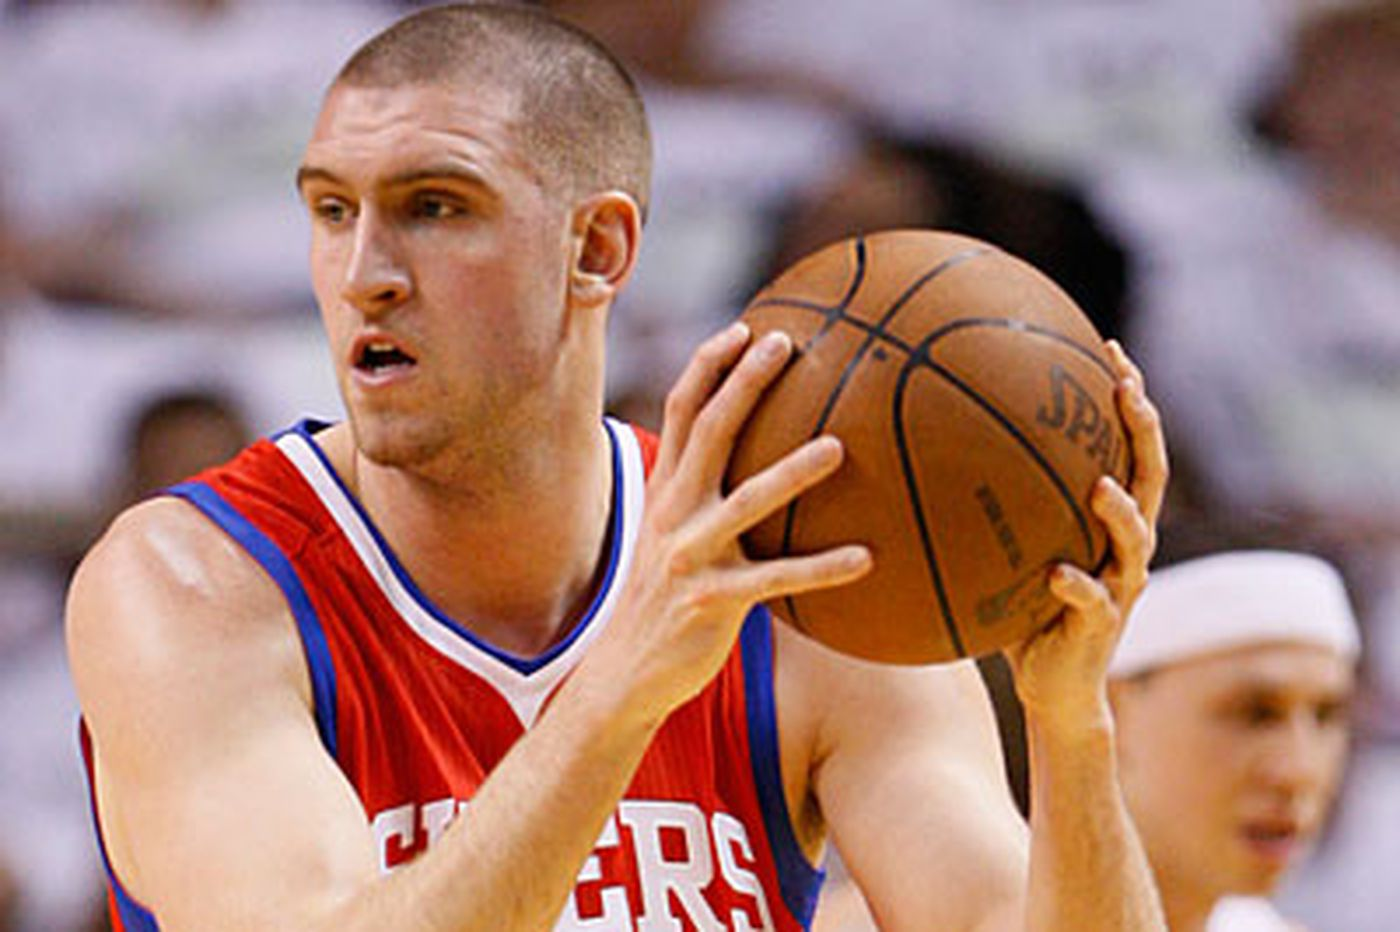 Sixers' Hawes pumped up and ready to play